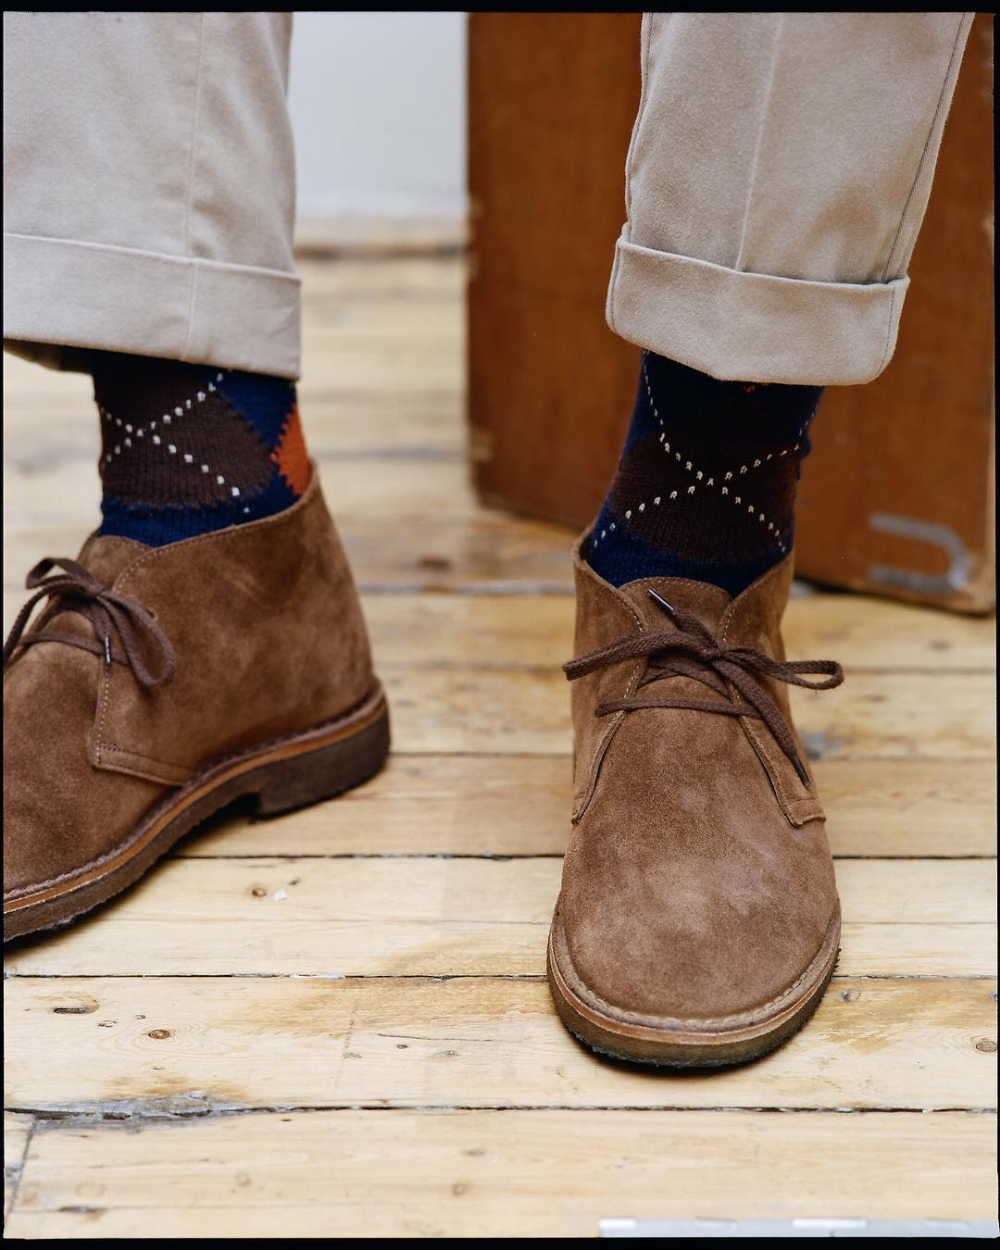 In a wearable navy fabric, the original Desert Boot from